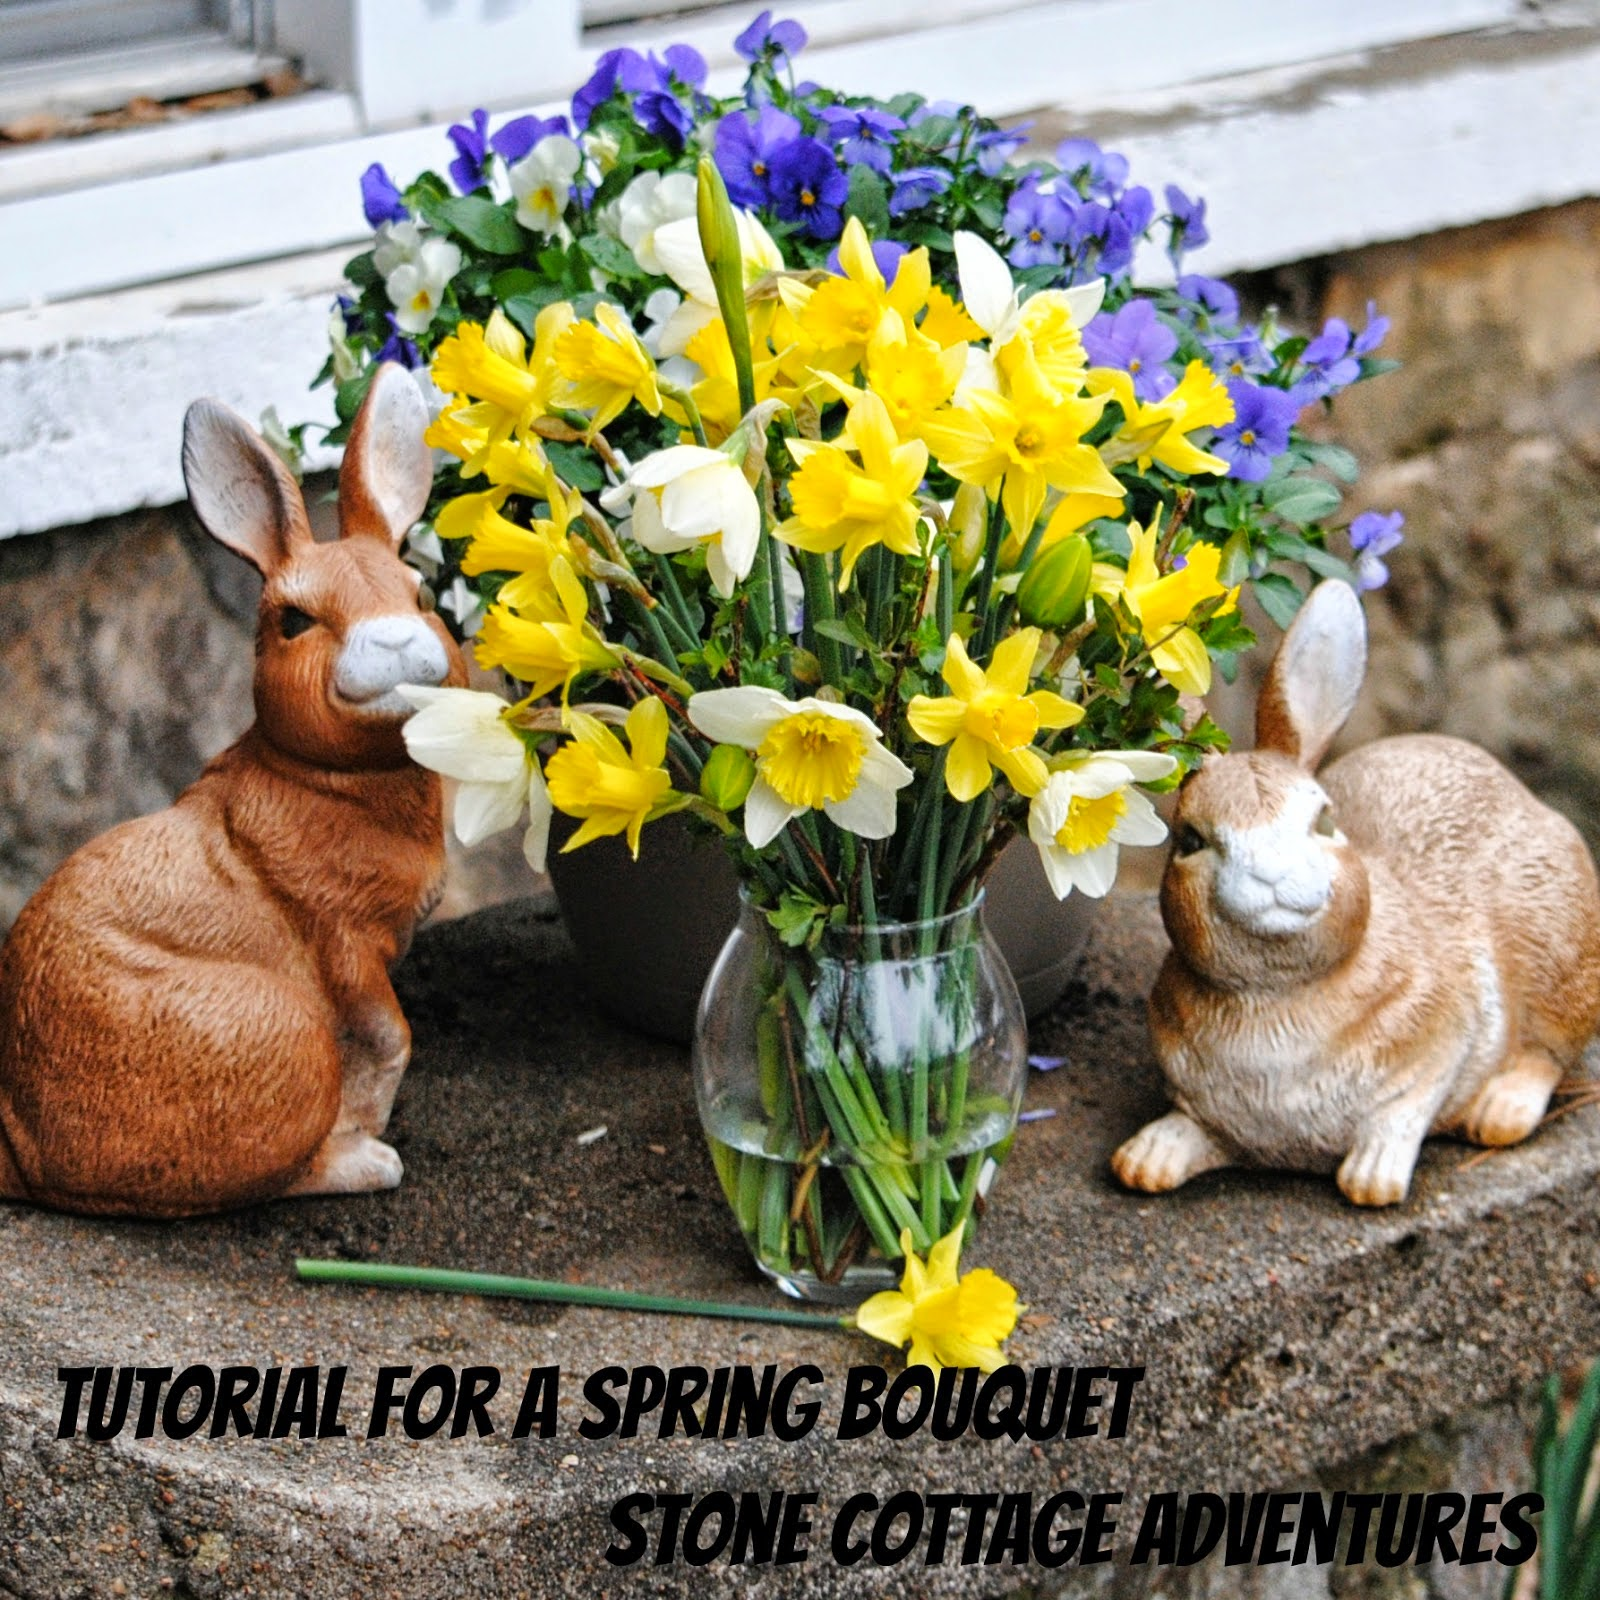 Spring Bouquet Tutorial, shared by Stone Cottage Adventures